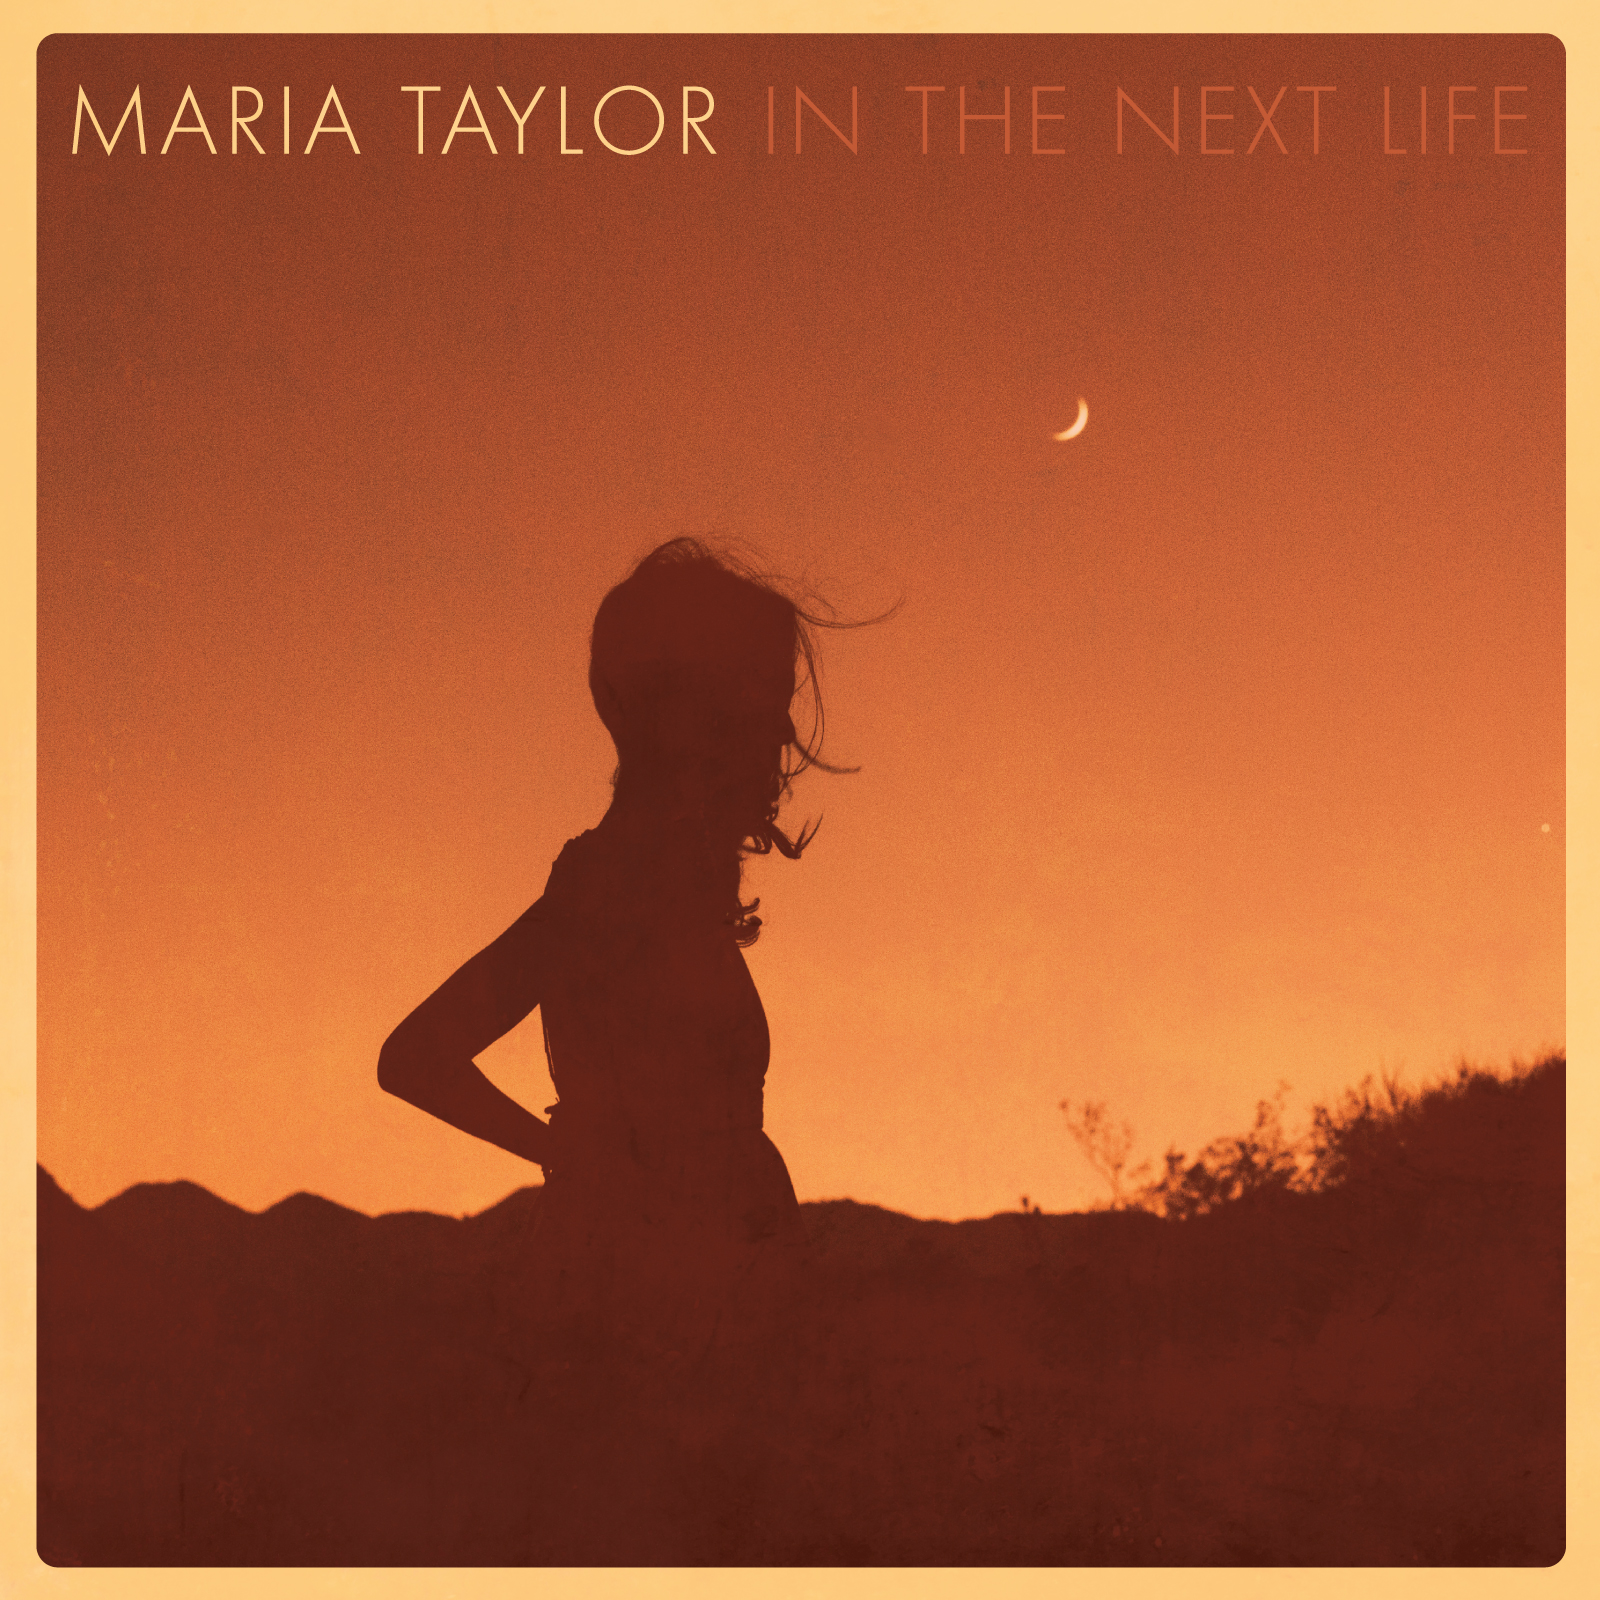 Maria Taylor - In the Next Life - LOWRES.jpg